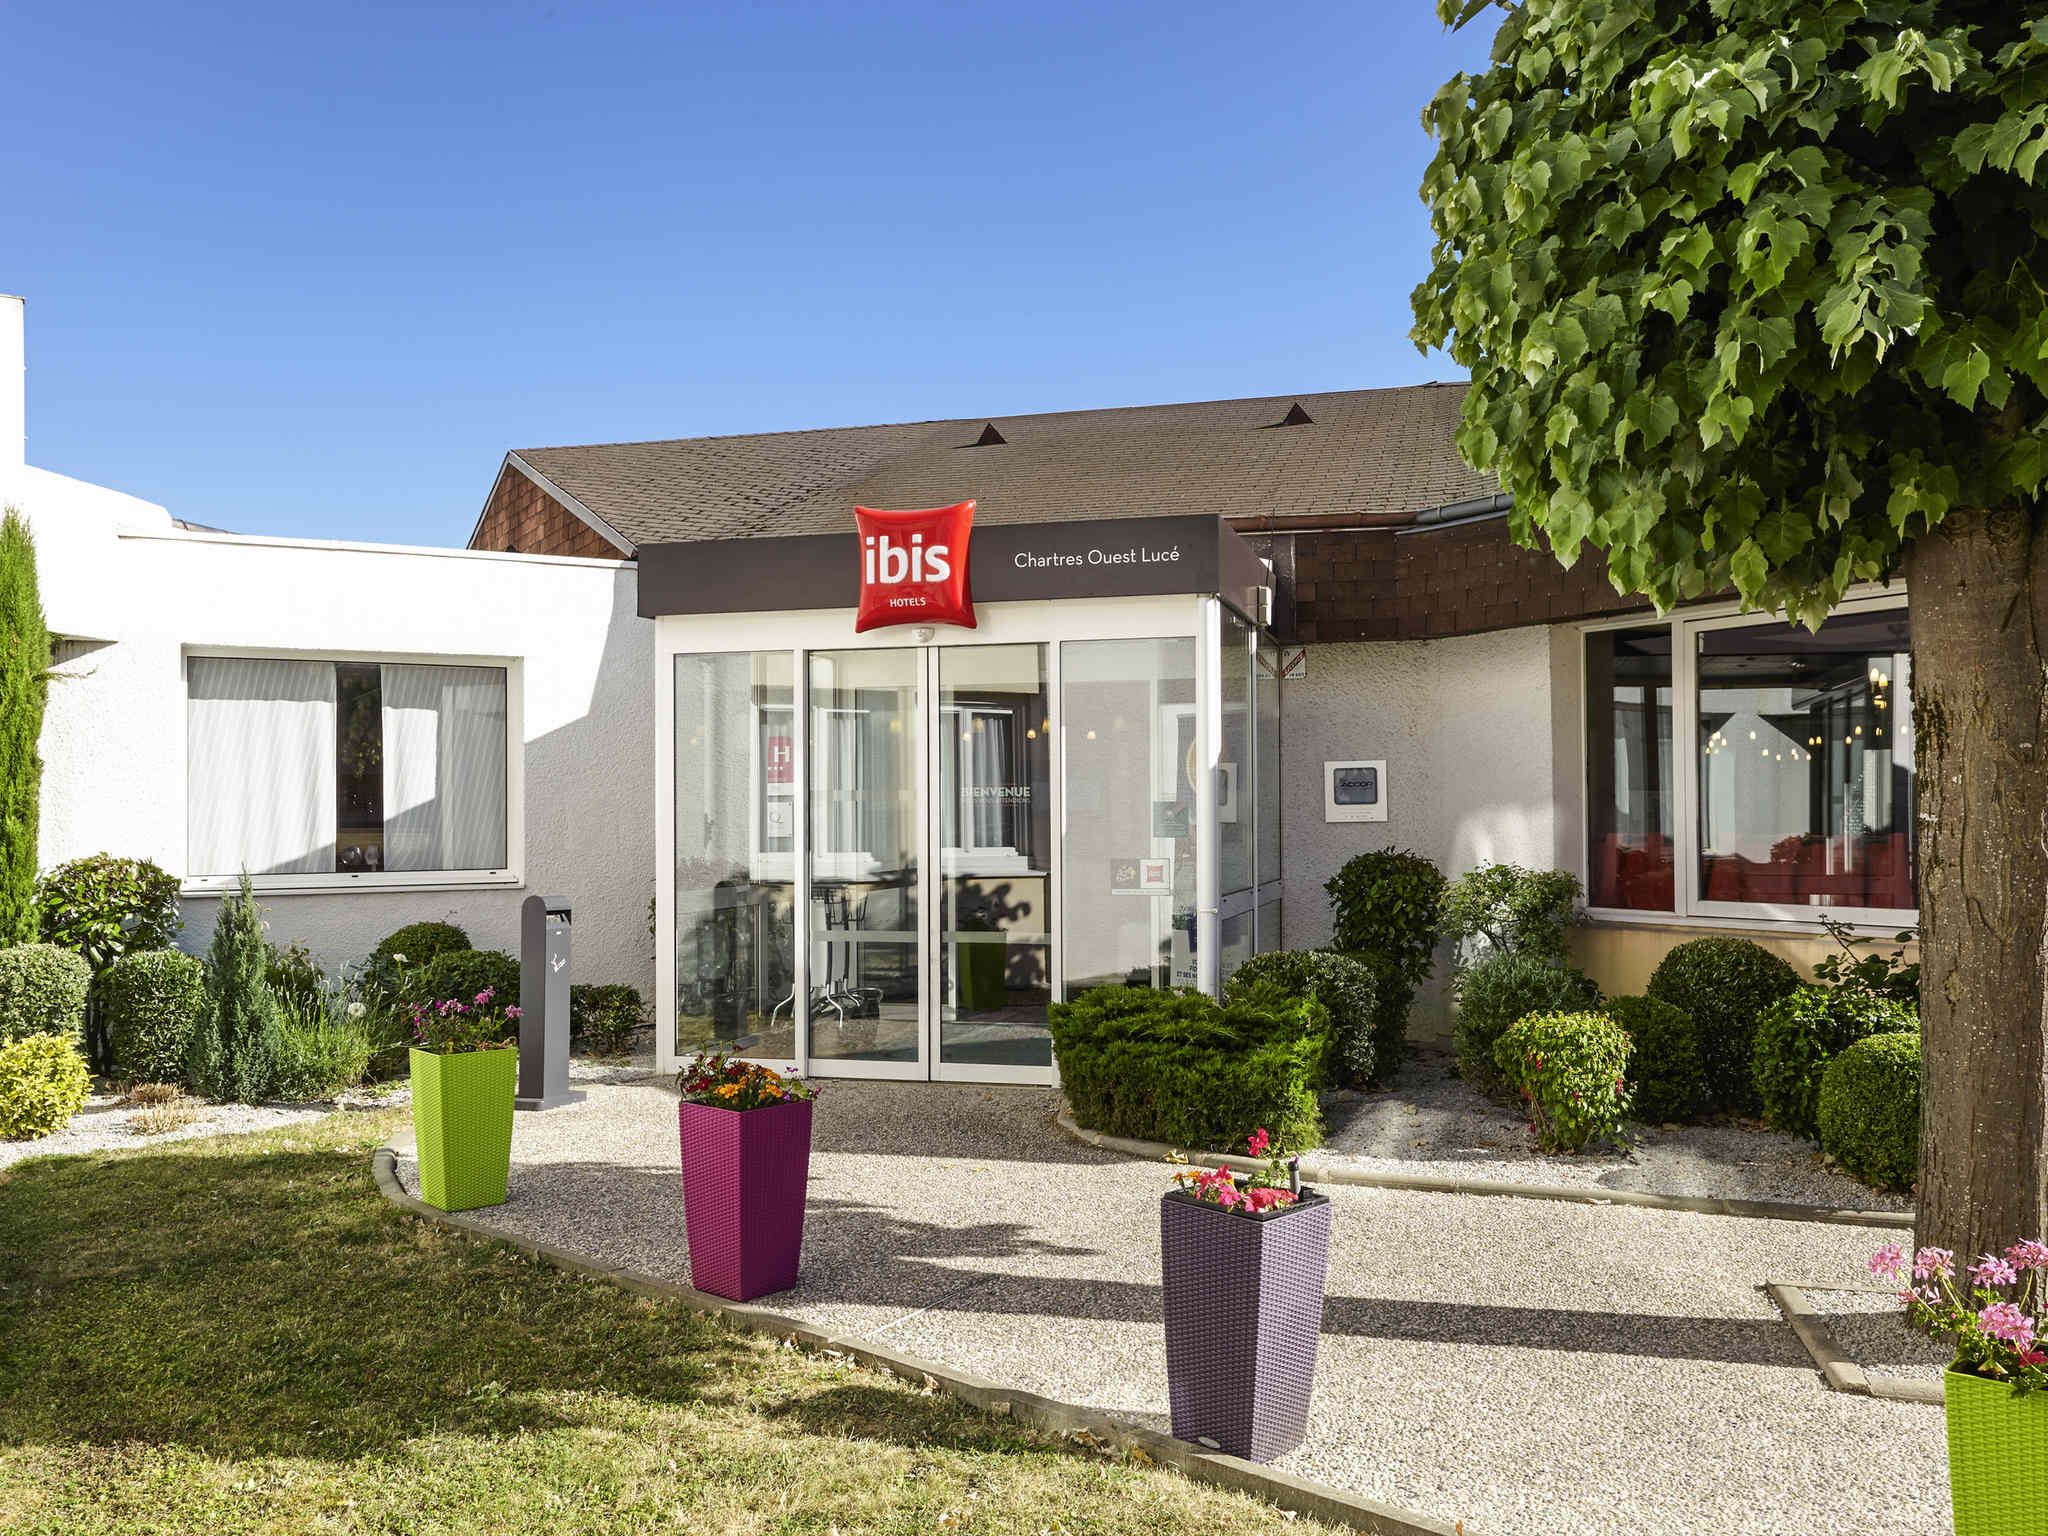 Hotel – ibis Chartres Ouest Lucé